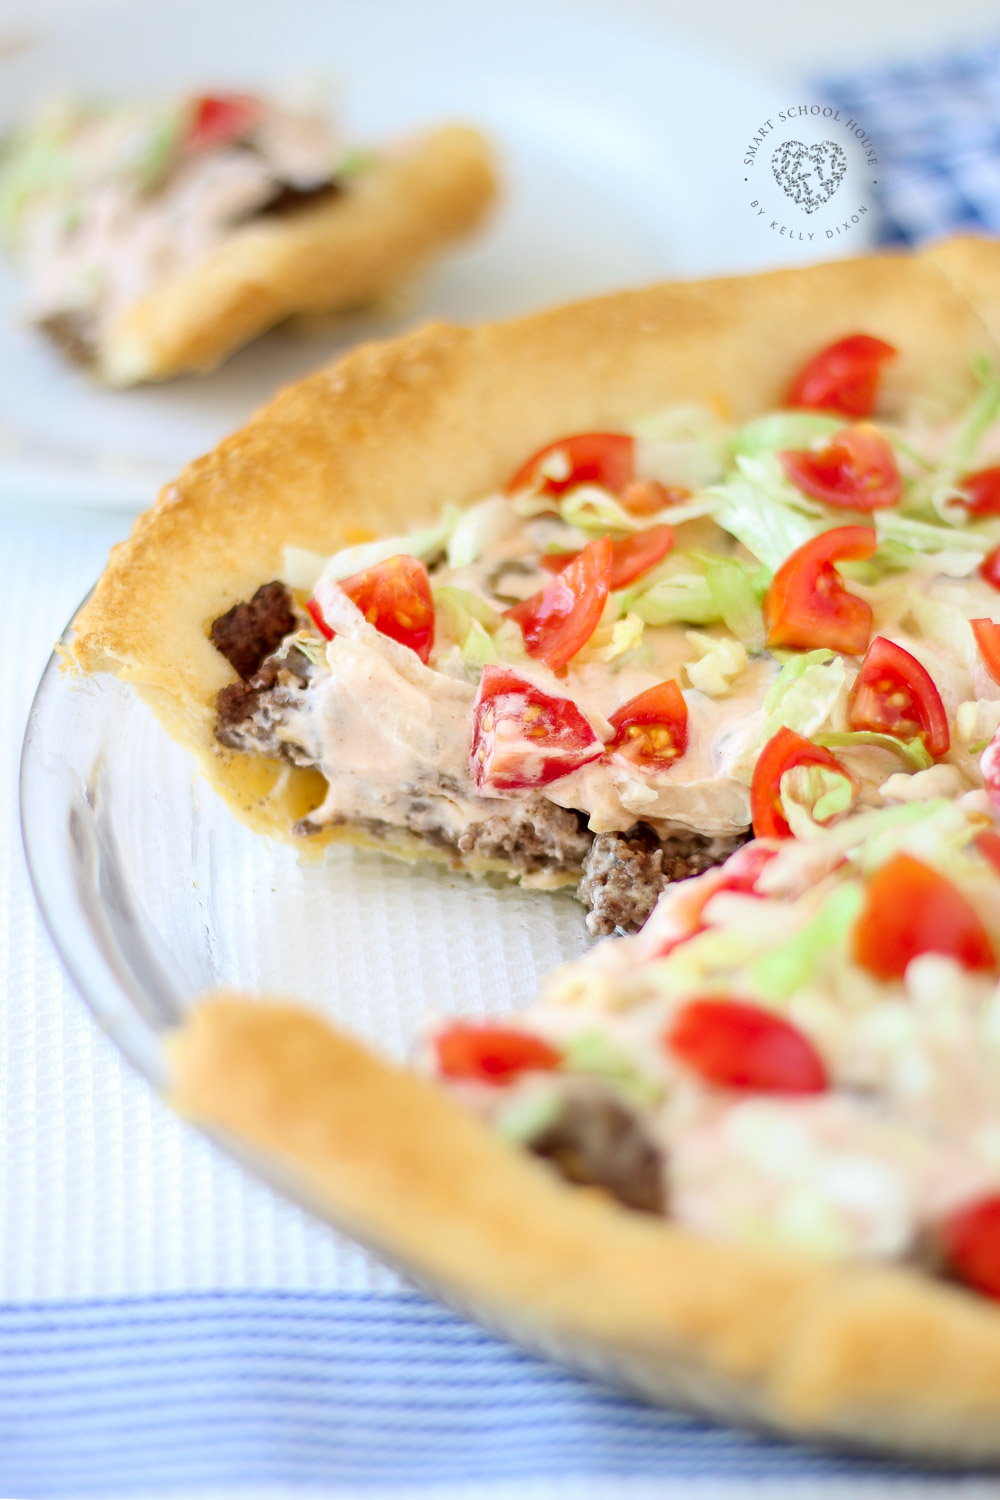 Easy Taco Pie Recipe! An easy recipe for dinner! Fluffy dough baked in a pie dish then loaded with beef, cheese, and more. #TacoPie #DinnerIdeas #EasyDinner